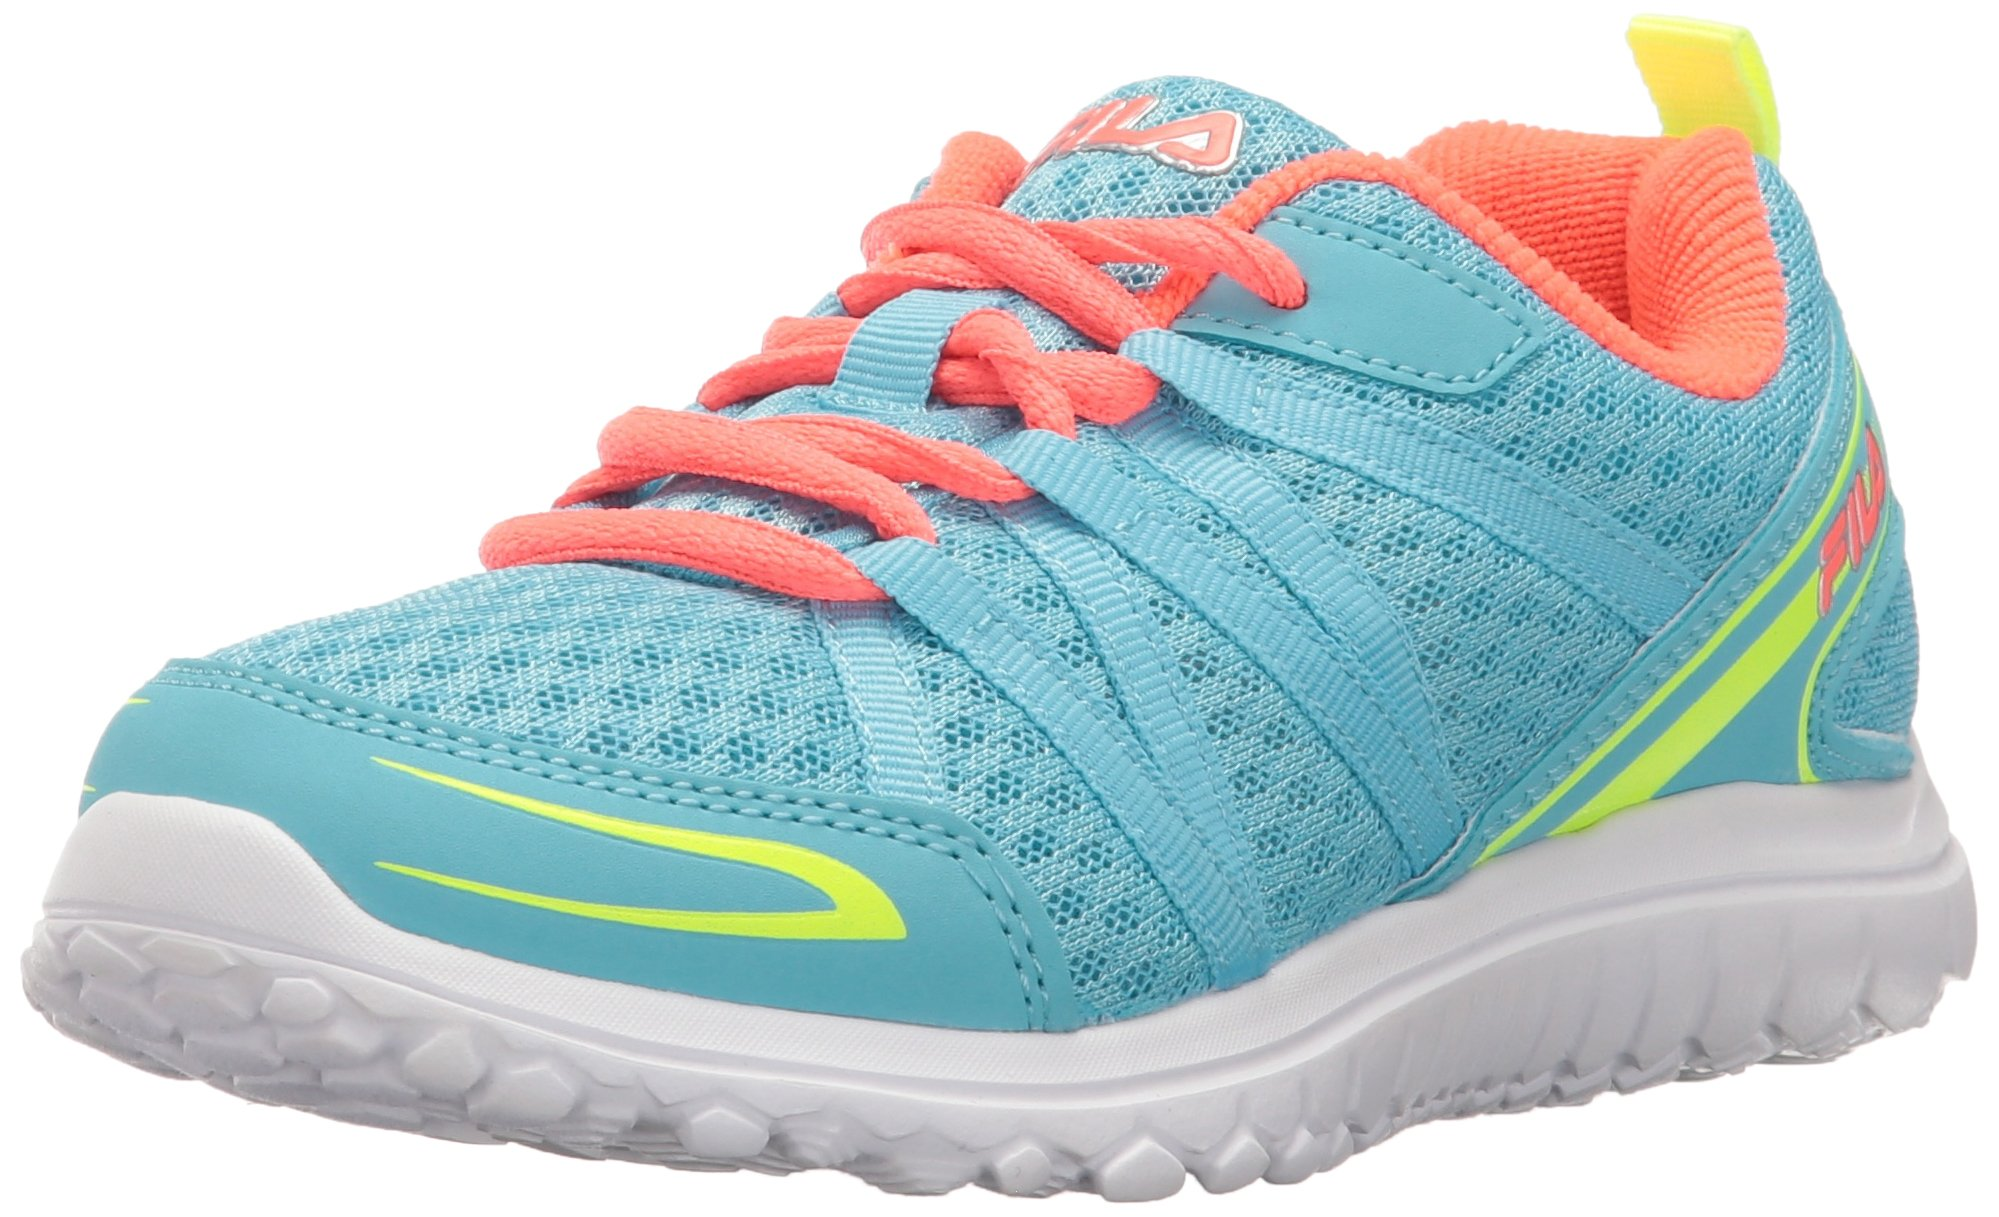 Fila Girls' FLYVER Skate Shoe, Bluefish/Safety Yellow/Fiery Coral, 1.5 M US Little Kid